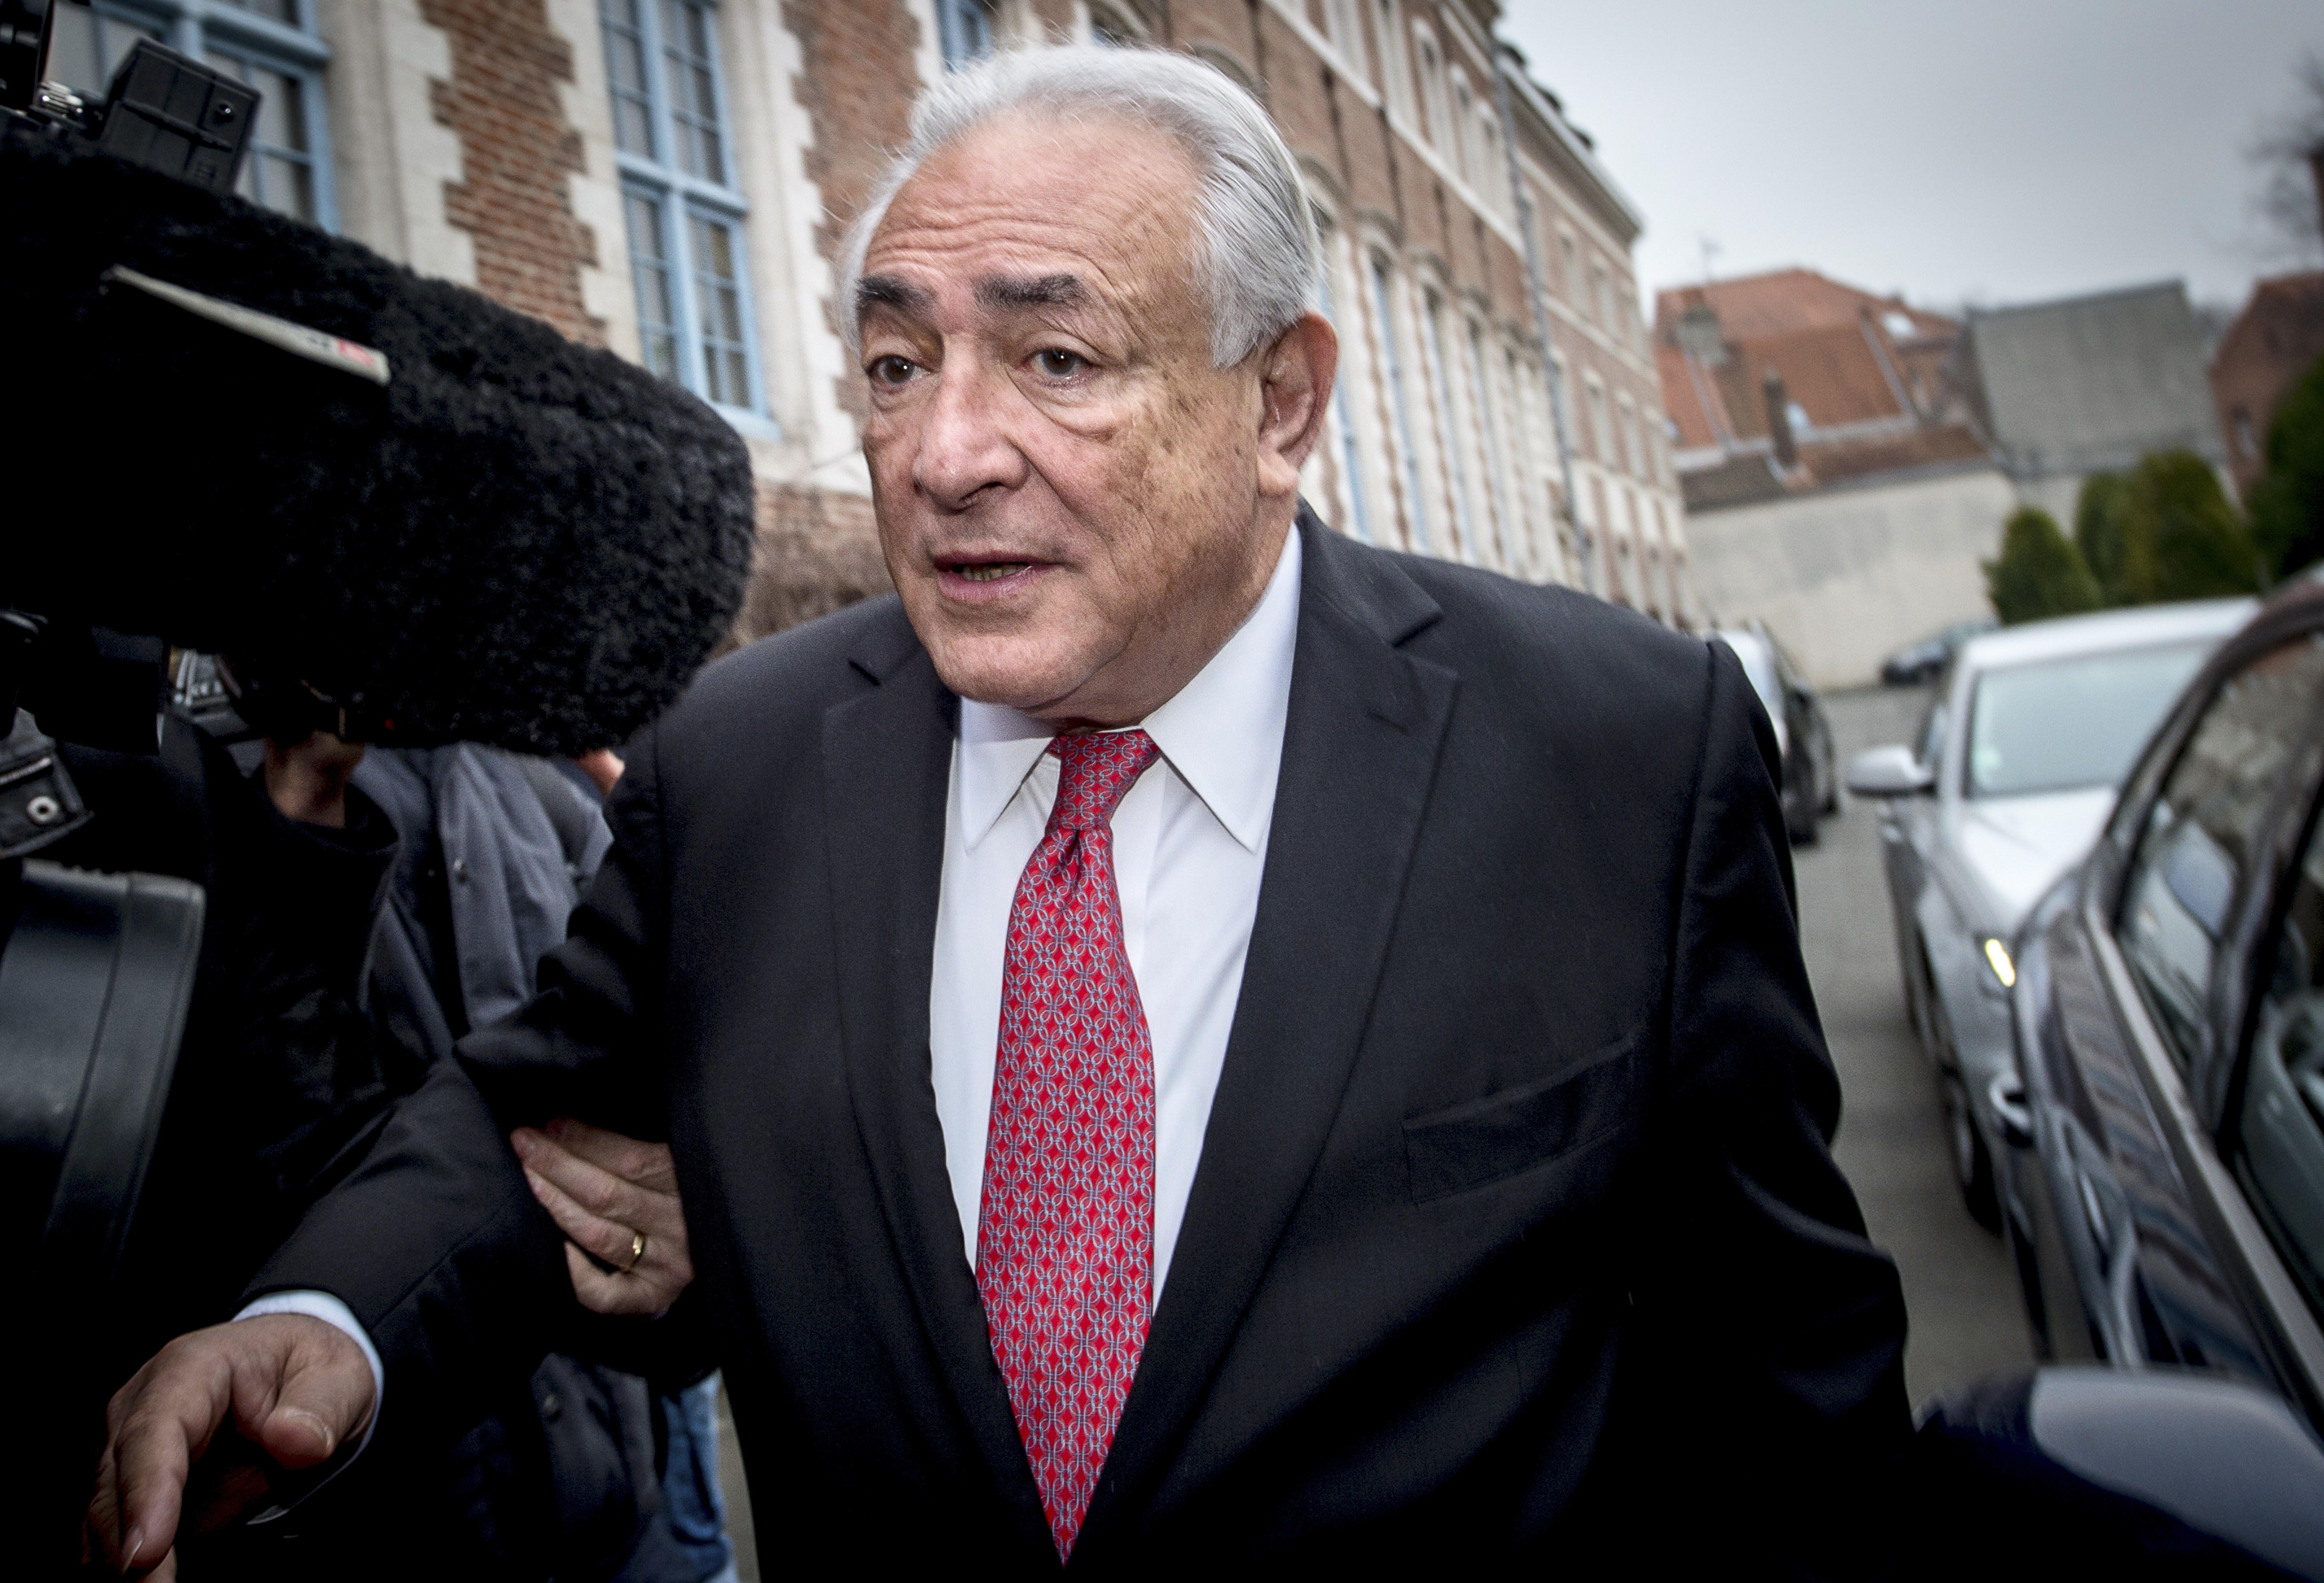 Ex-IMF chief Dominique Strauss-Kahn  leaves his hotel  on his way to the Lille courthouse, northern France, on February 12, 2015.